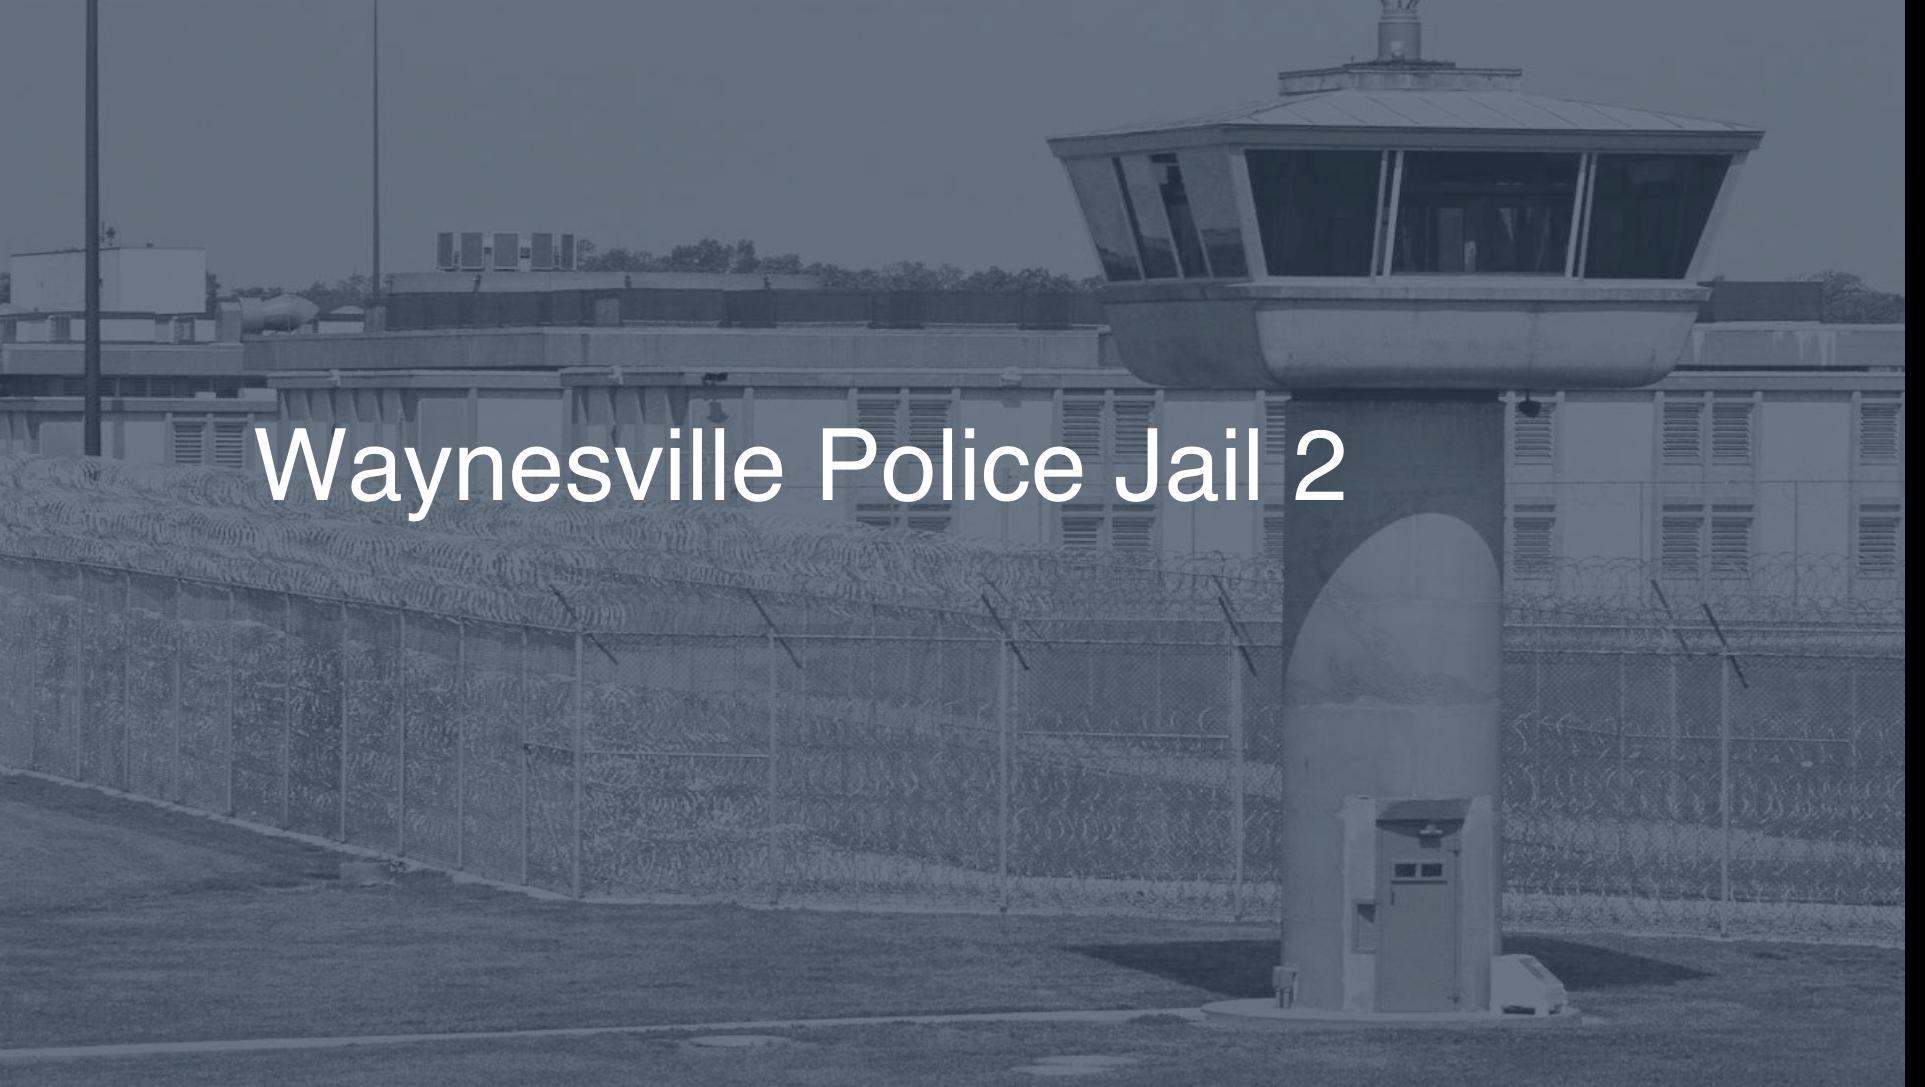 Waynesville Police Jail correctional facility picture